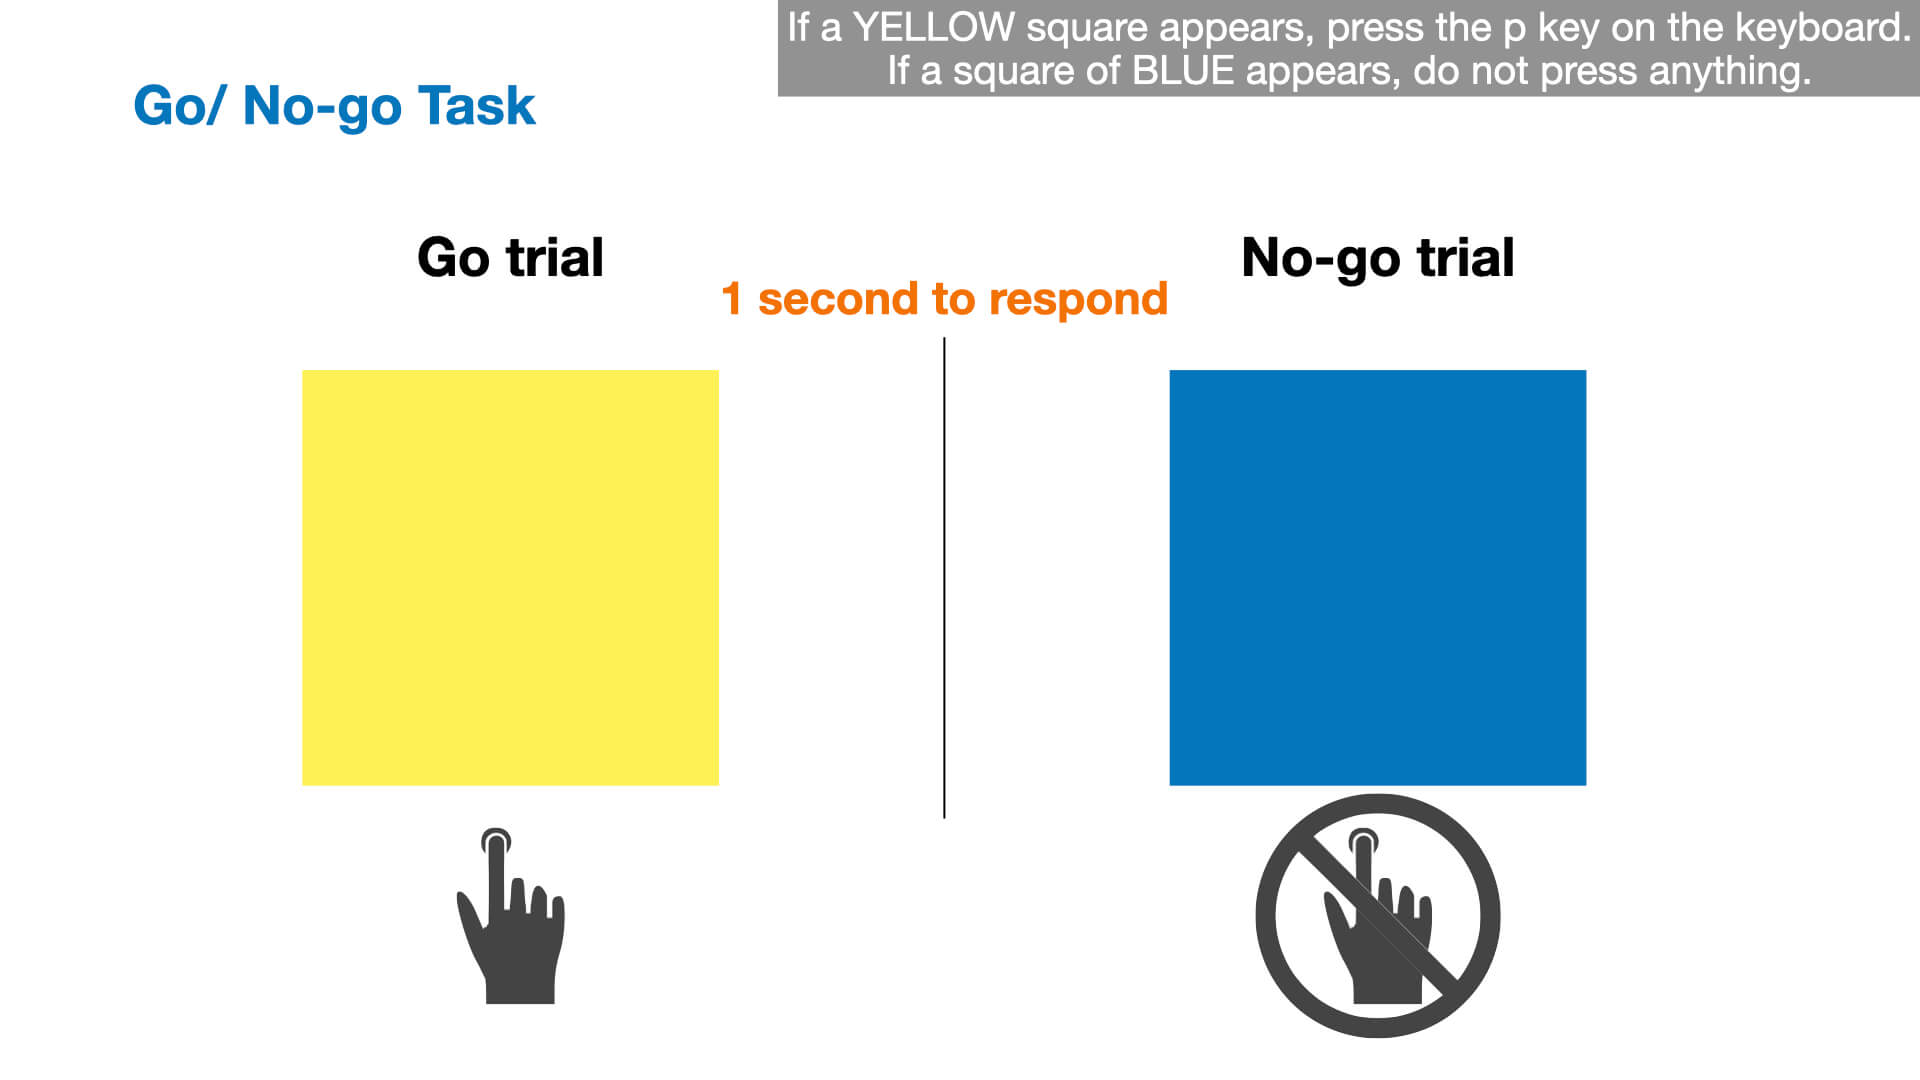 Illustration of the two types of trial in a Go/No-go experiment